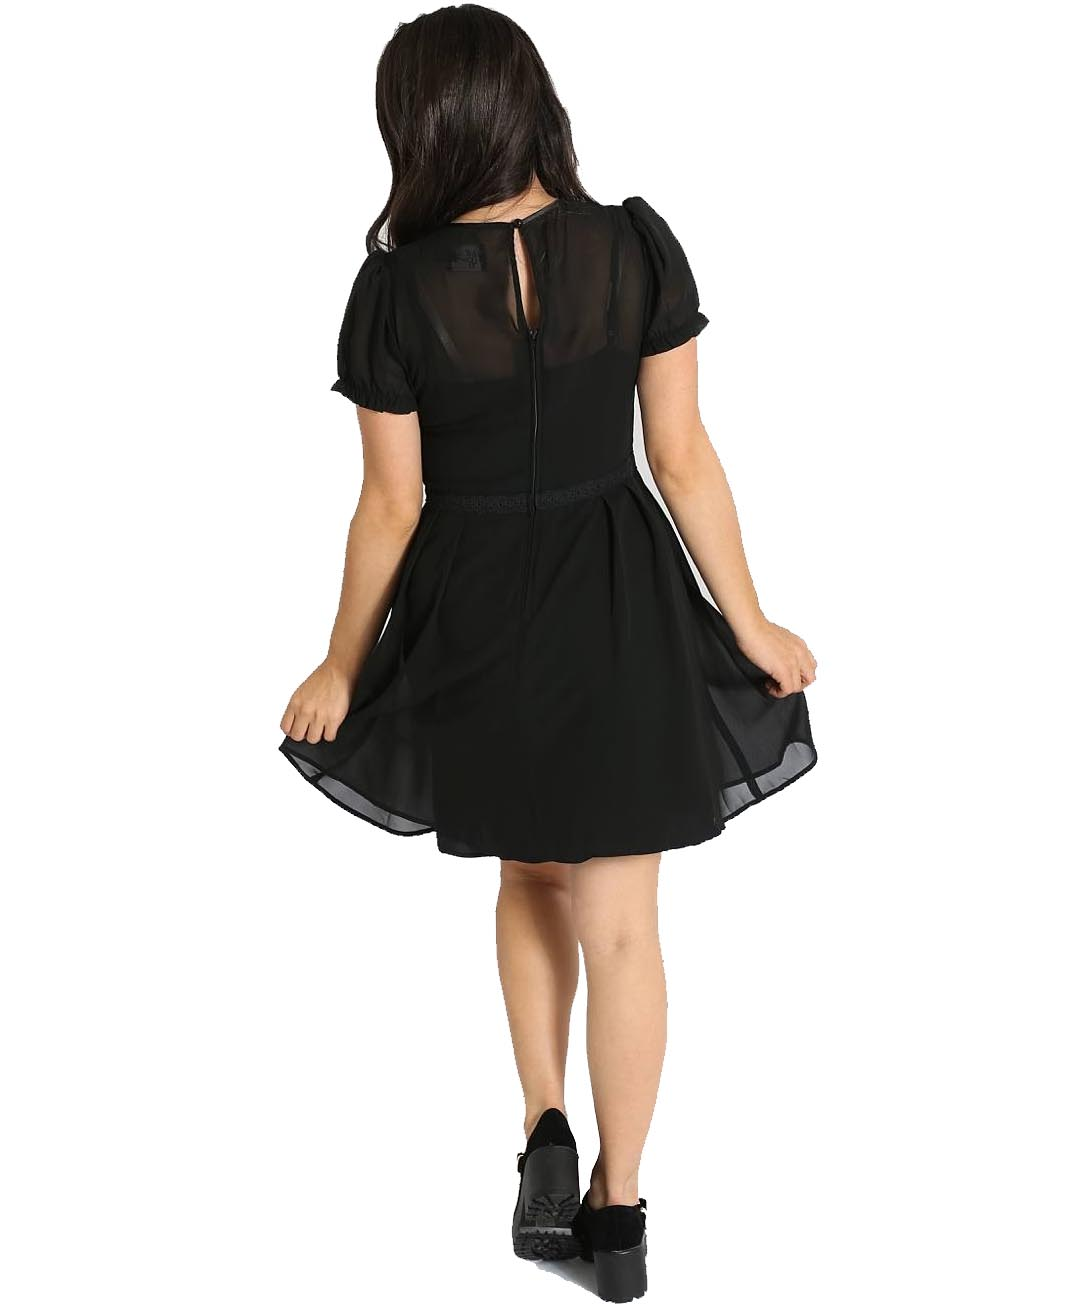 Hell-Bunny-Gothic-Black-Floaty-Mini-Dress-ARIA-Pussy-Bow-All-Sizes thumbnail 25